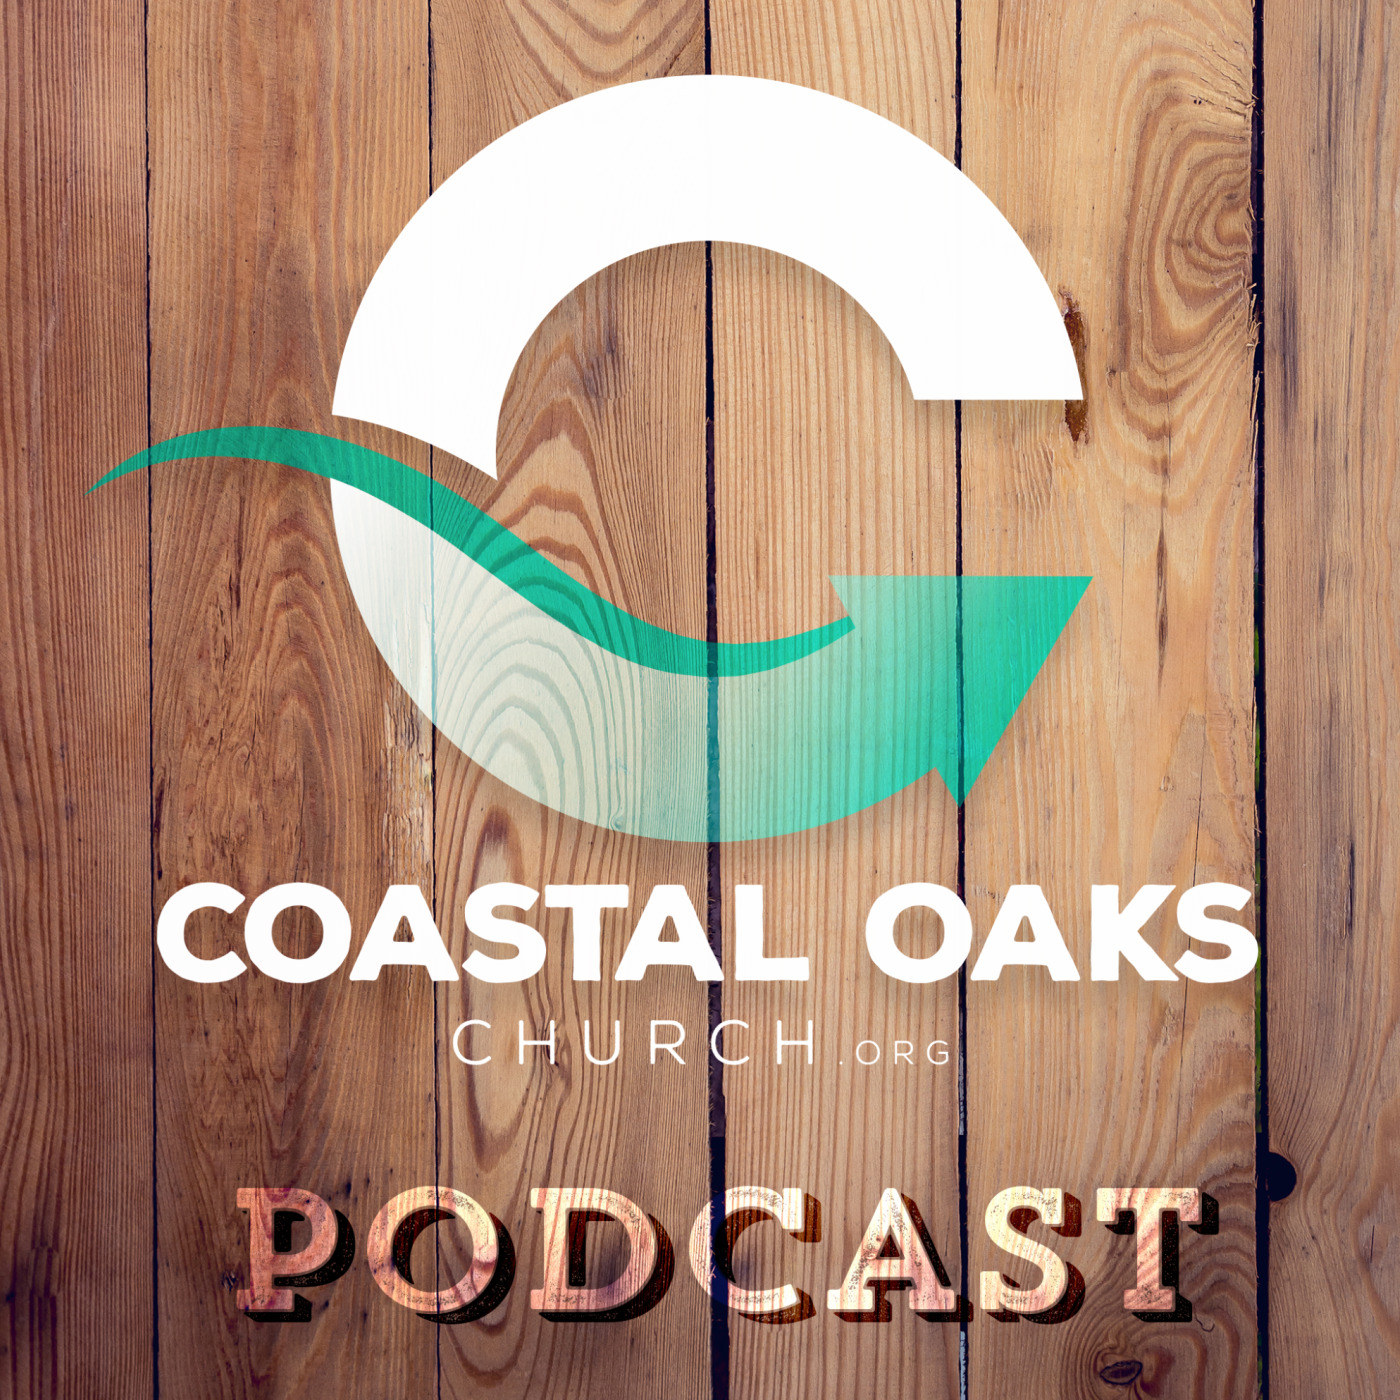 Coastal Oaks Church